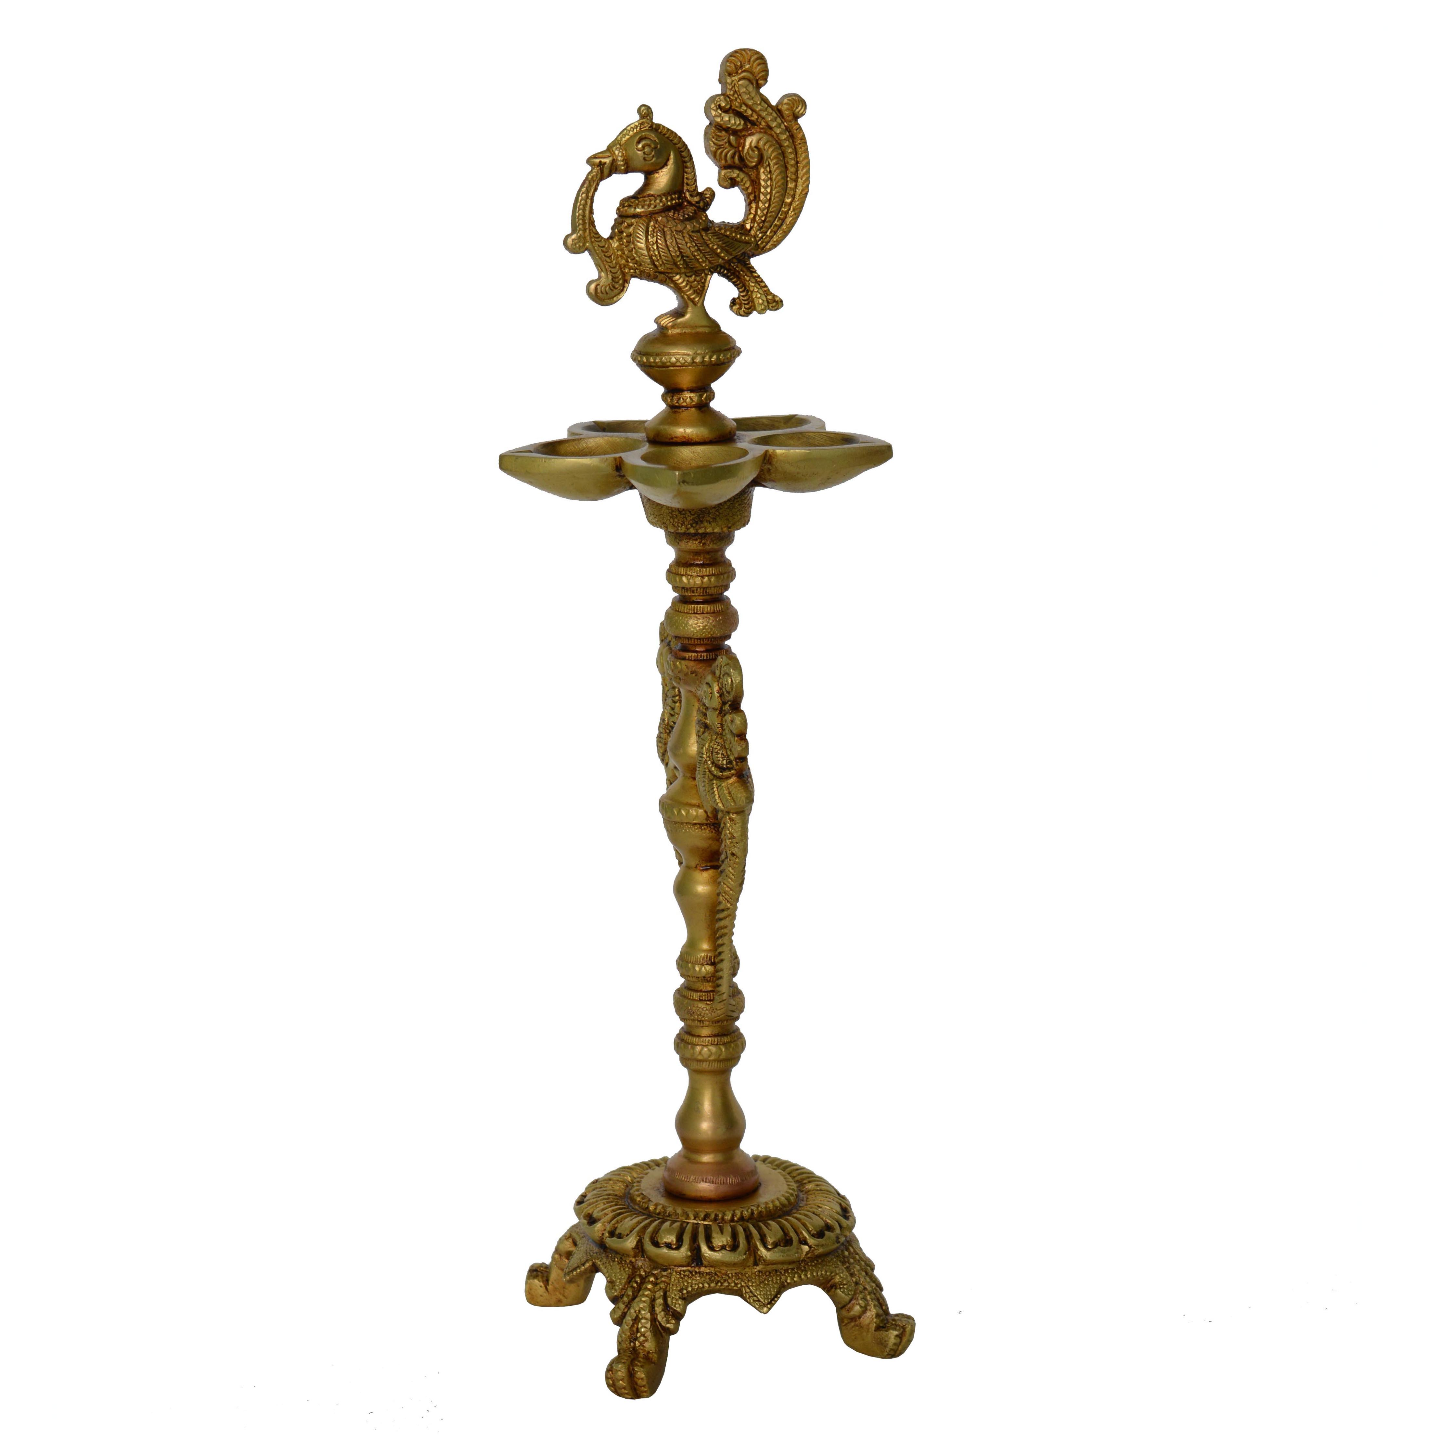 Brass Floor Oil Lamp with Bird Figure on Top with Carving - 12.8 Inch (BS1206 A)